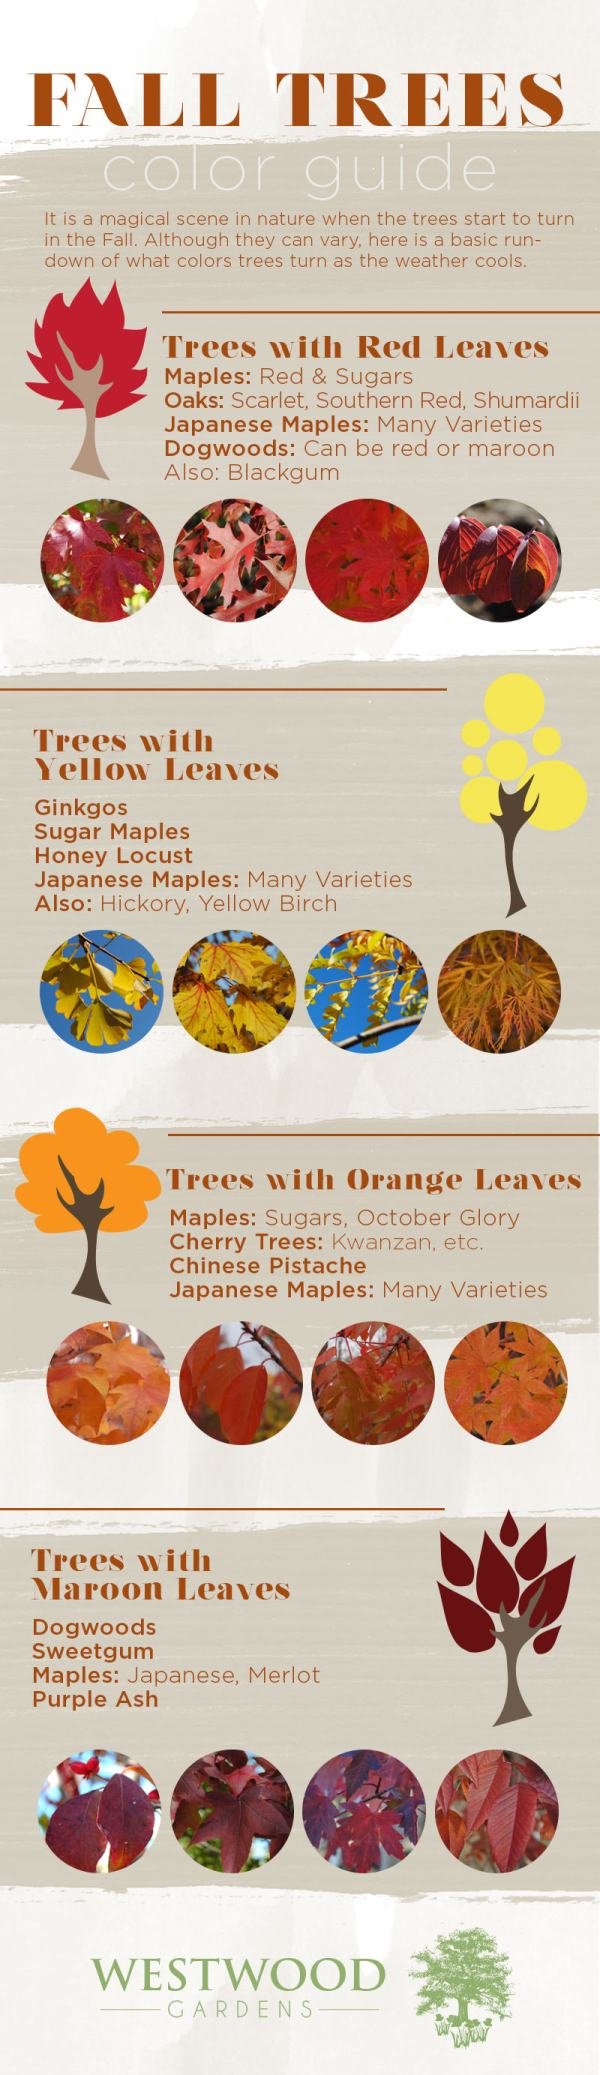 Fall-Tree-Color-Guide